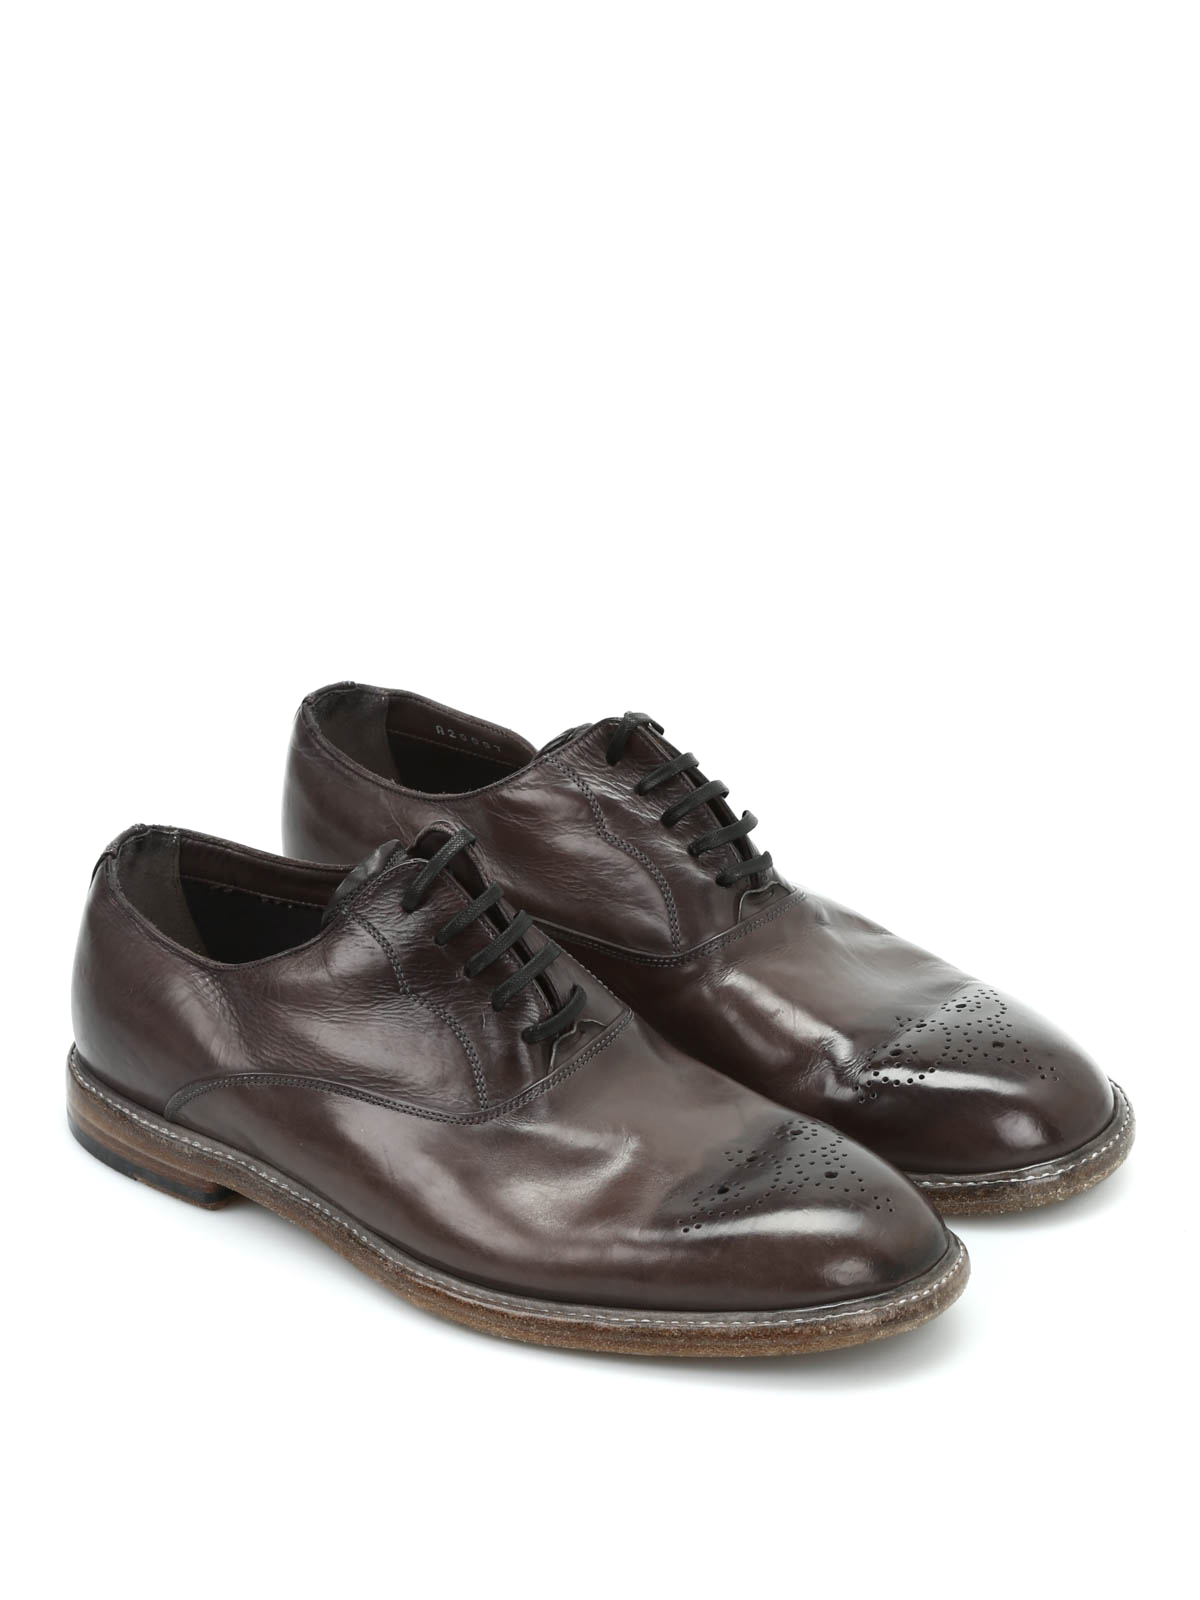 official site online latest for sale Dolce & Gabbana Marsala Oxford shoes cheap sale new arrival with credit card for sale footlocker pictures cheap online cbreV